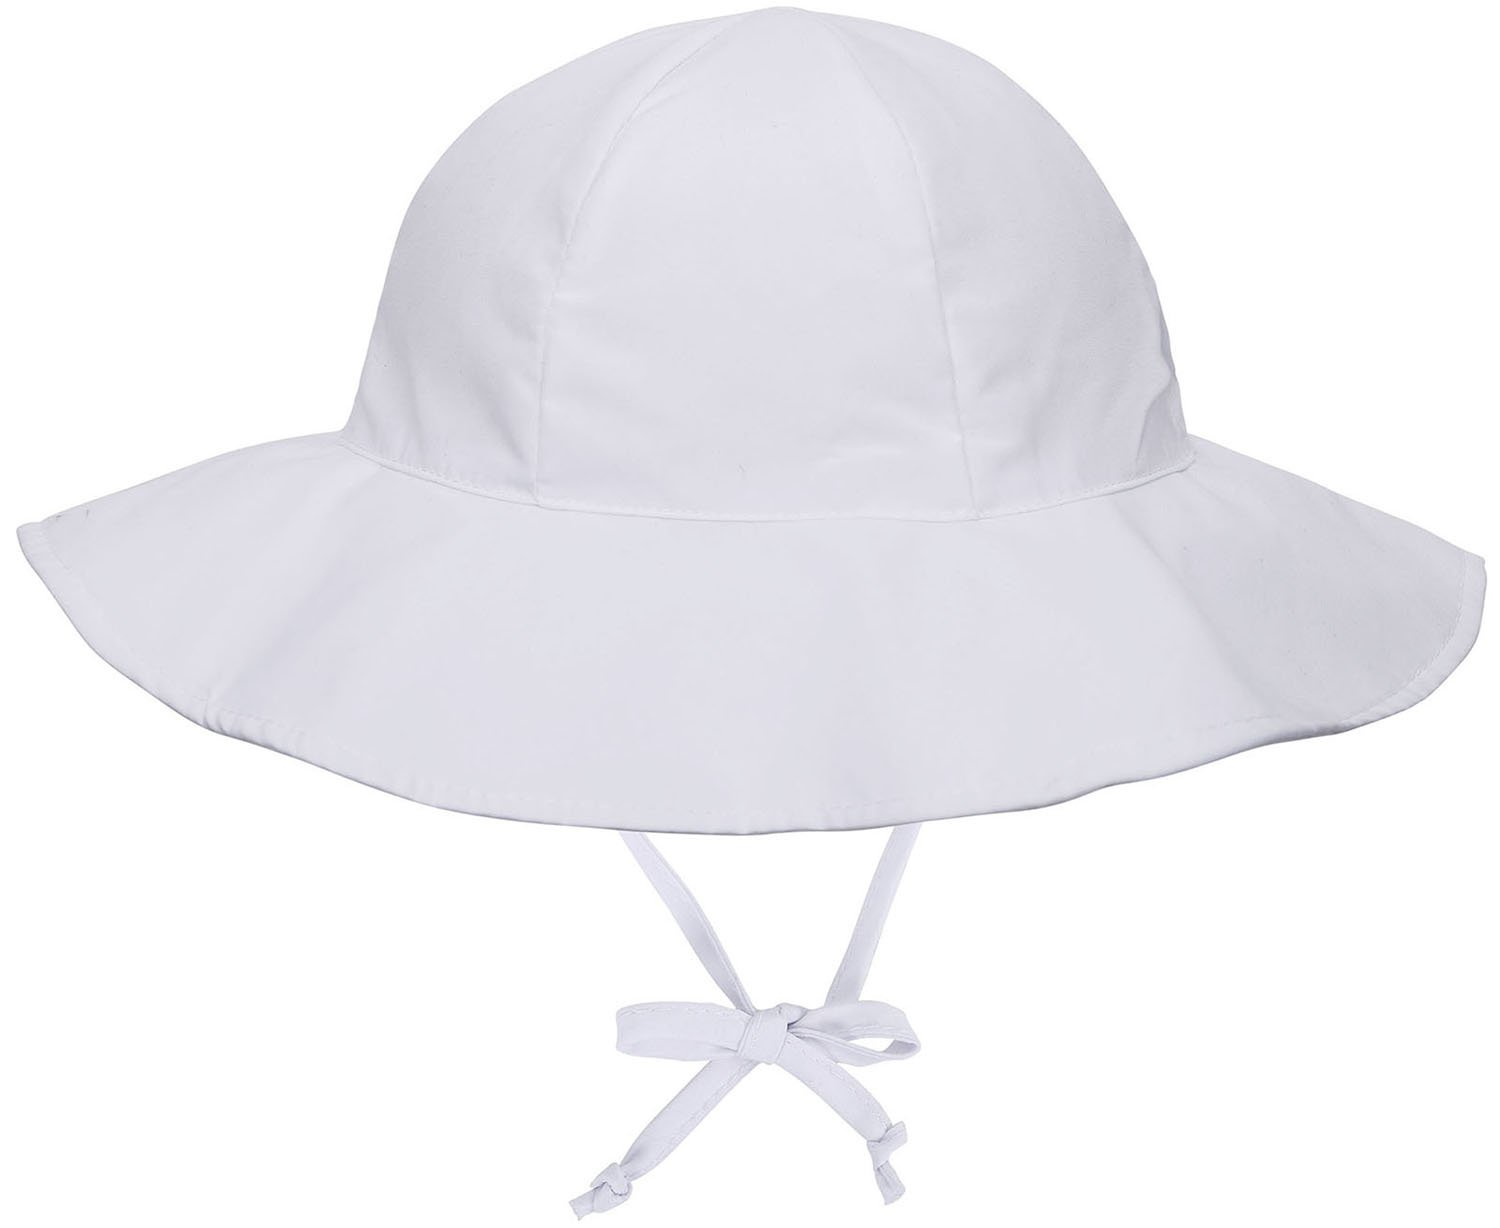 Livingston Girls' 50+ UPF Protective Wide Brim Sun Hat, White, 0-12 Months